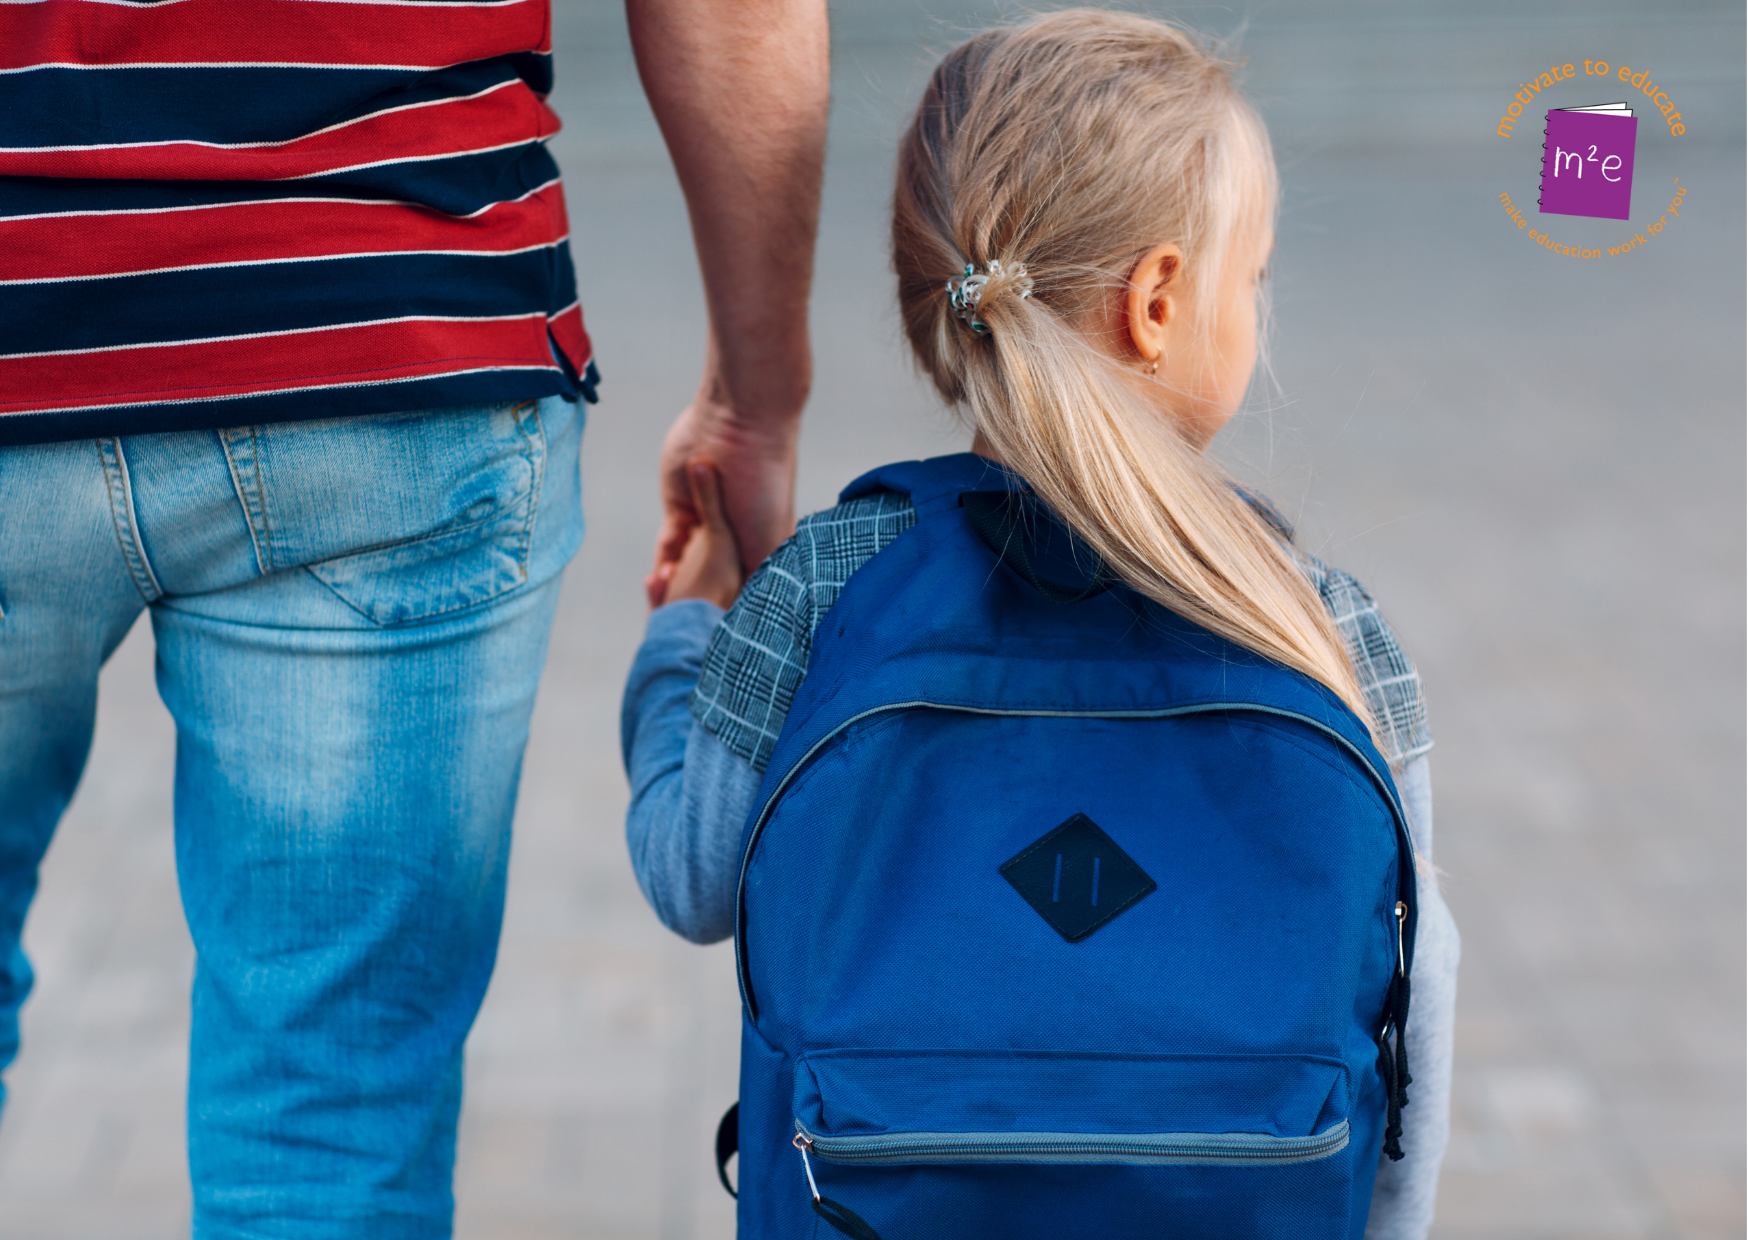 Back to school: Supporting pupil wellbeing online